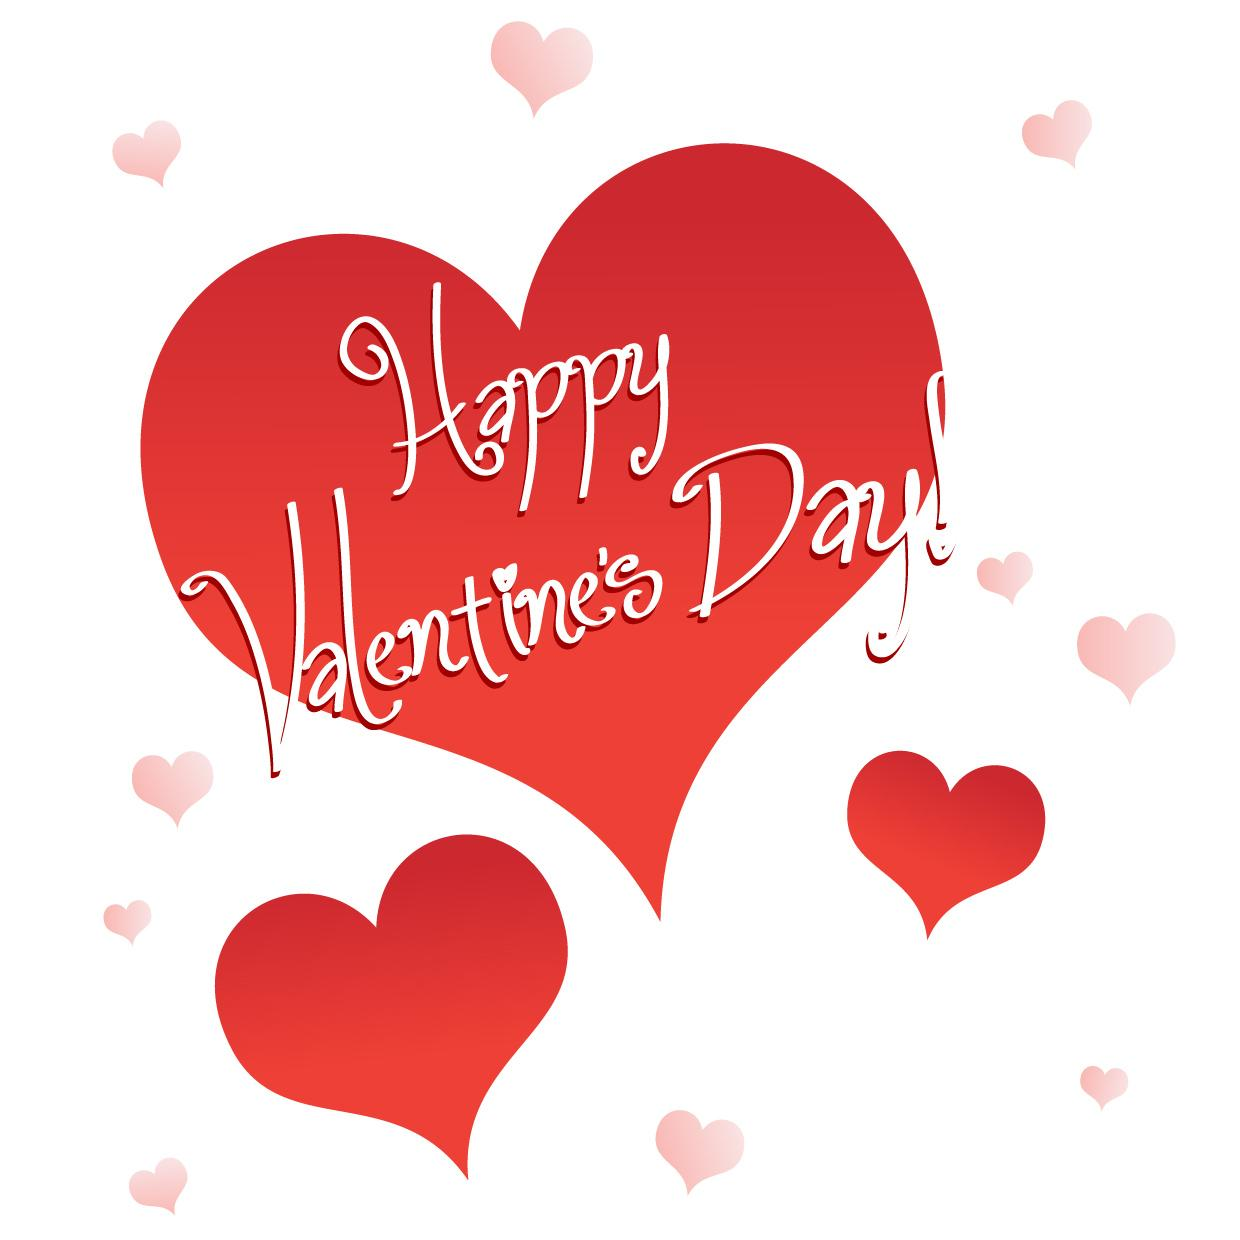 Happy valentines day clip art for love share submit download